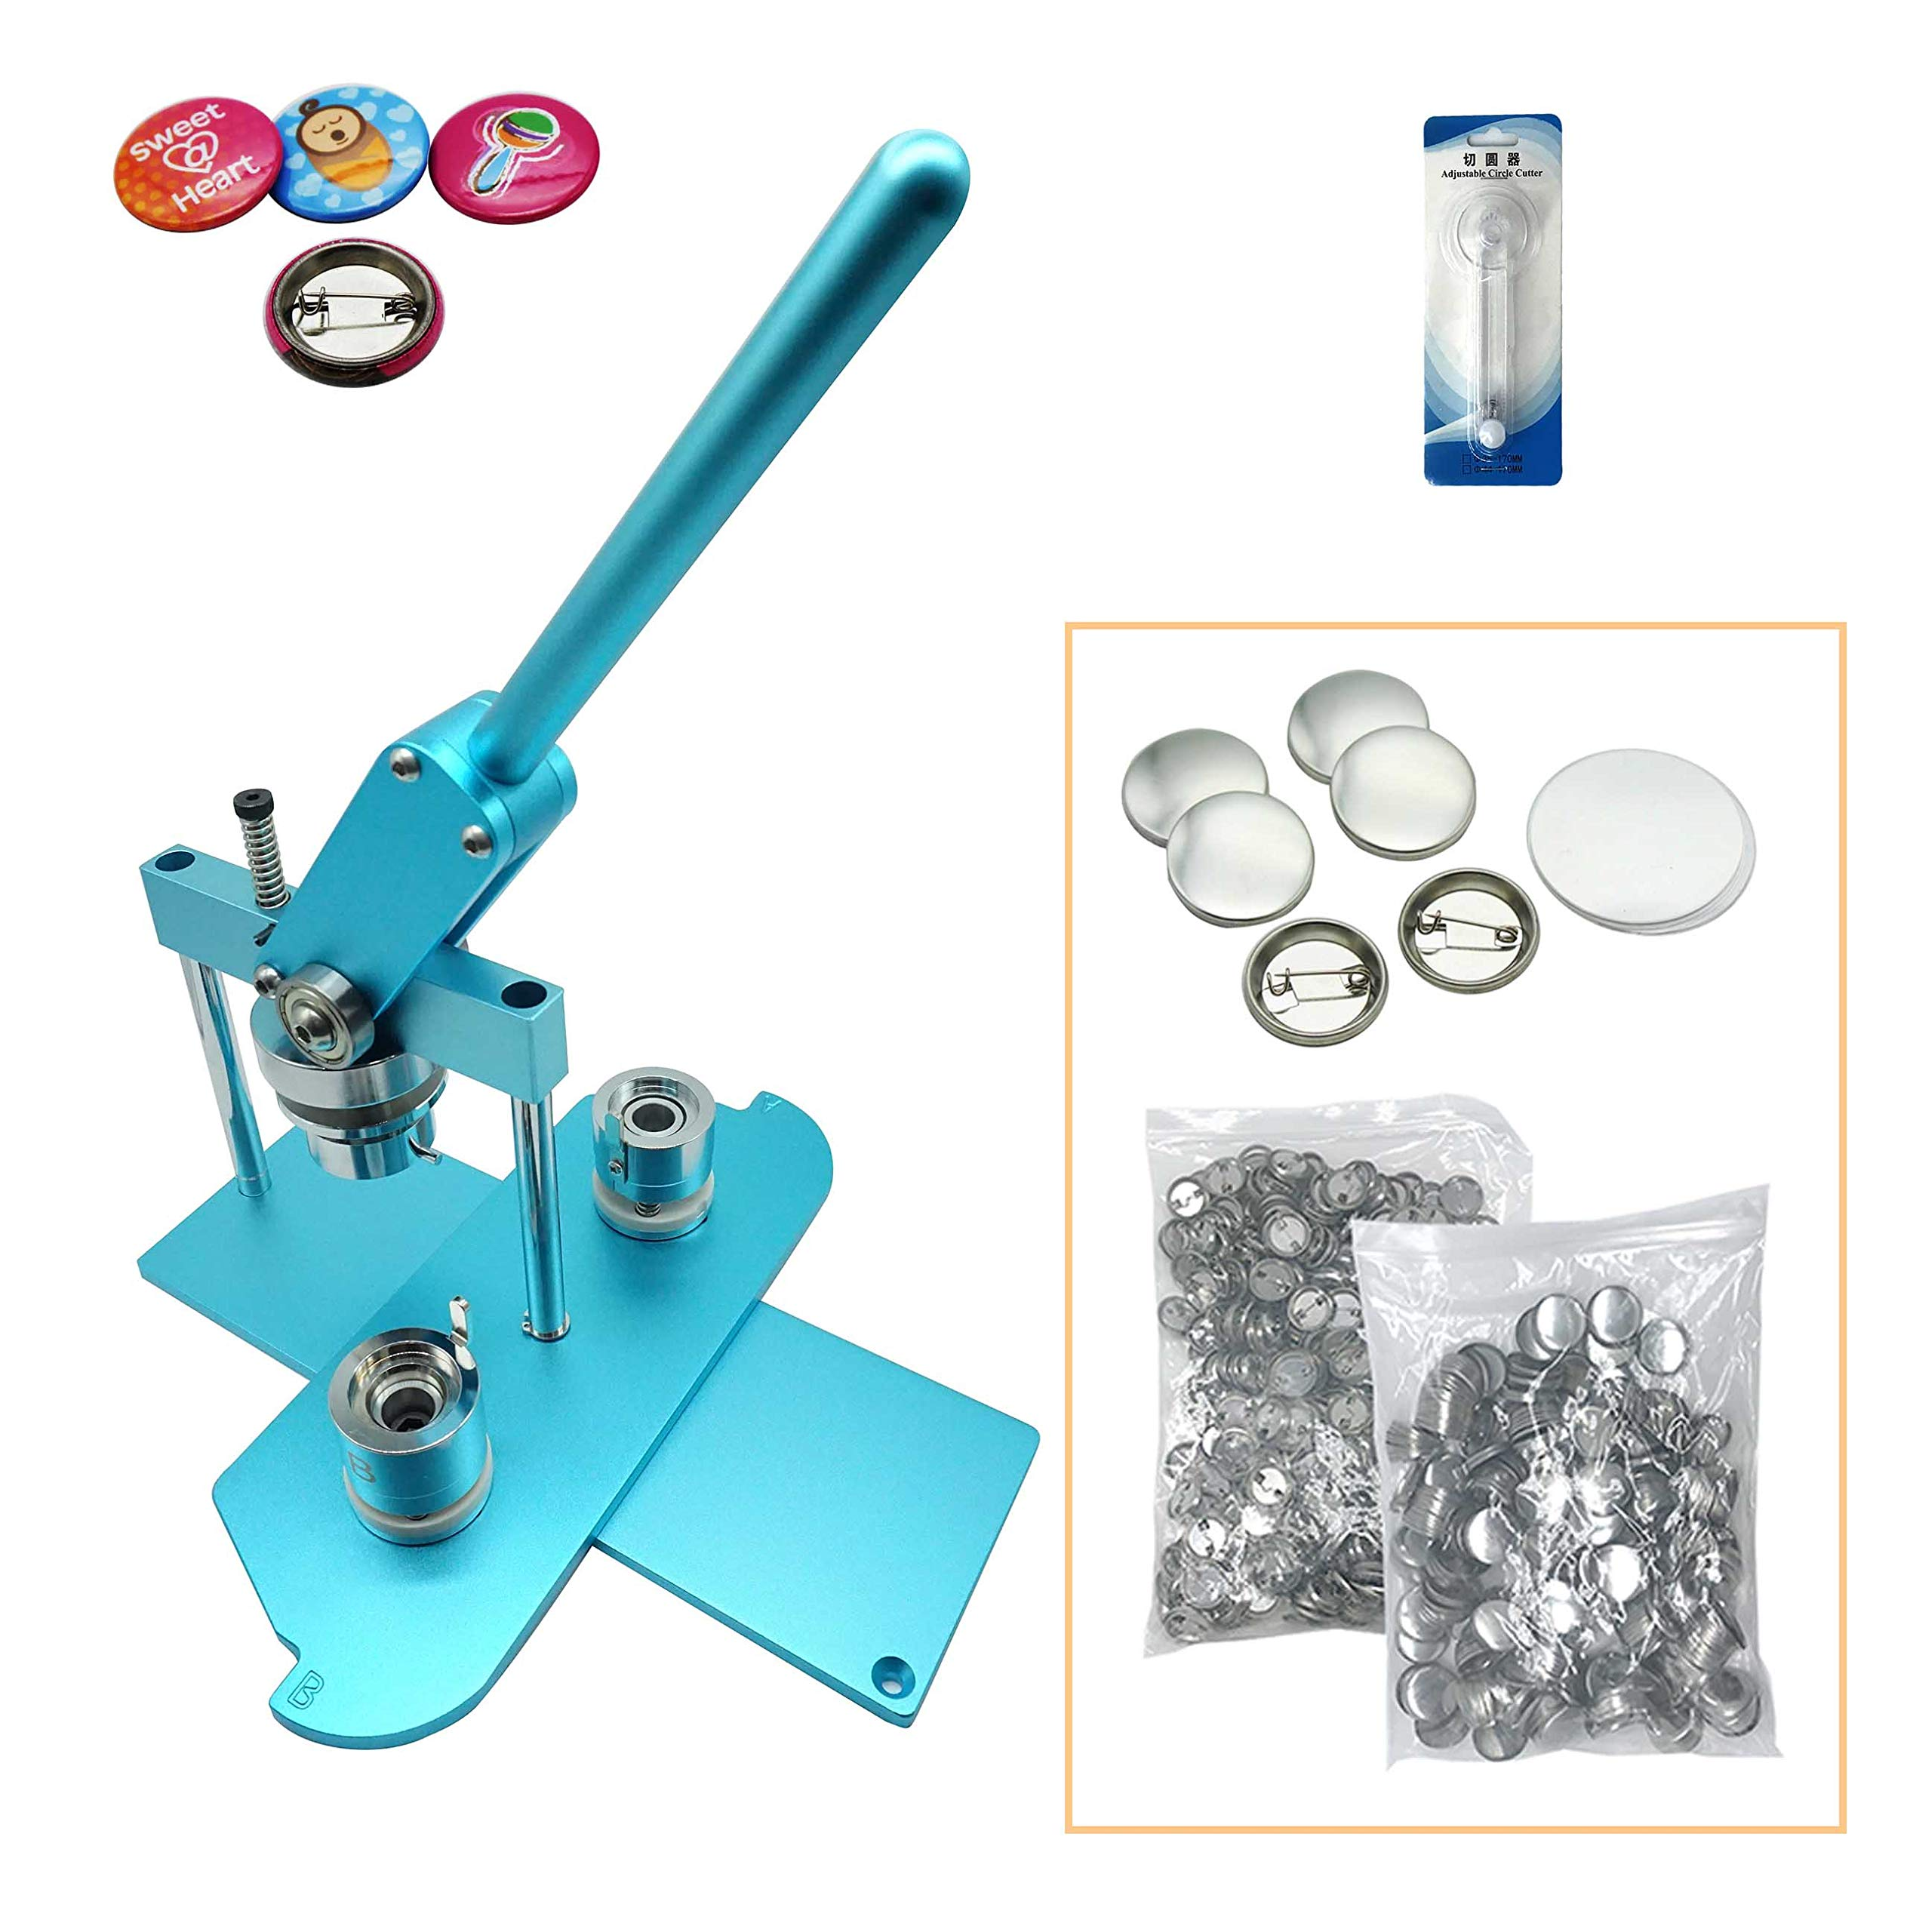 ChiButtons (KIT) 25mm(1'') Pro Badge Machine Button Maker B400 + Mould + 500 Parts + Circle Cutter Metric System(Blue) by Chi Buttons